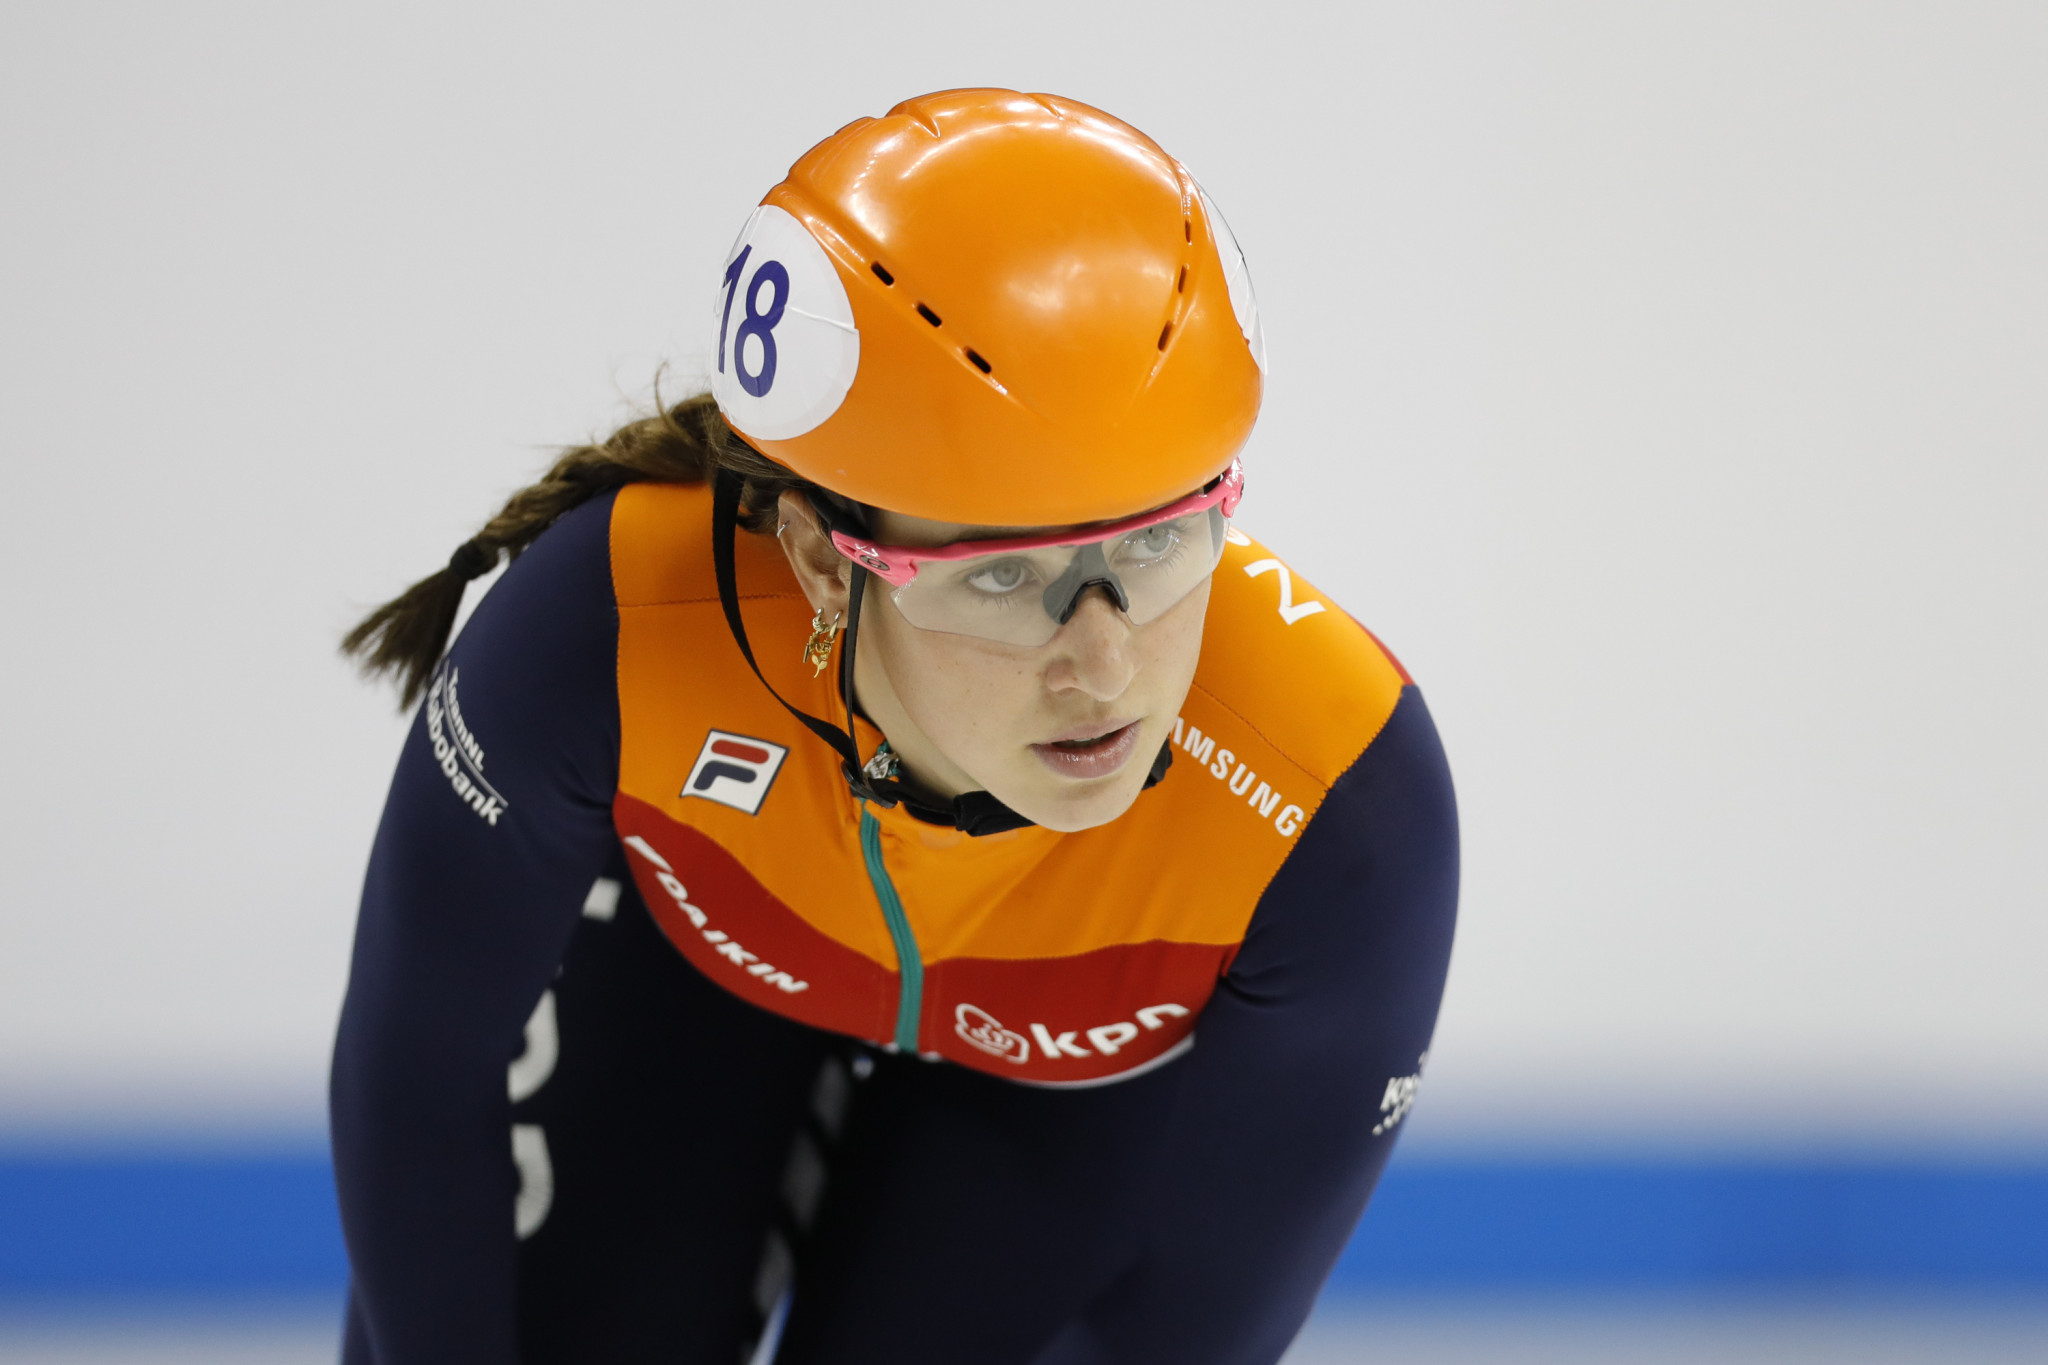 Suzanne Schulting looks to continue her red-hot form from last season © Getty Images